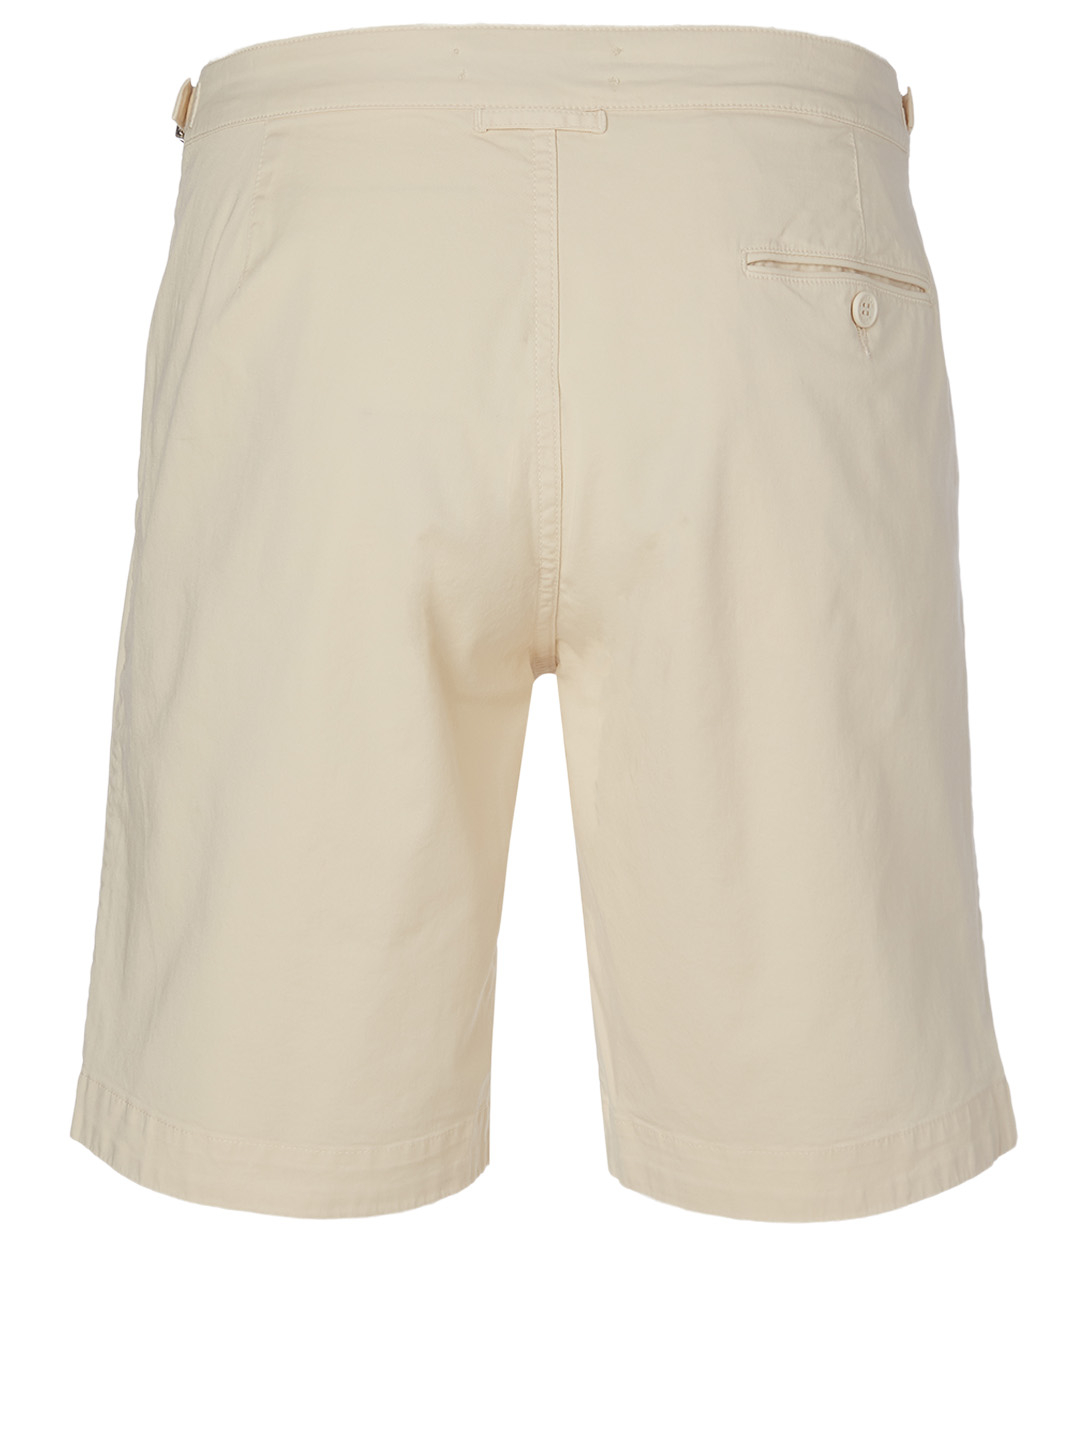 ORLEBAR BROWN Dane II Cotton Twill Longest Length Shorts Men's Brown